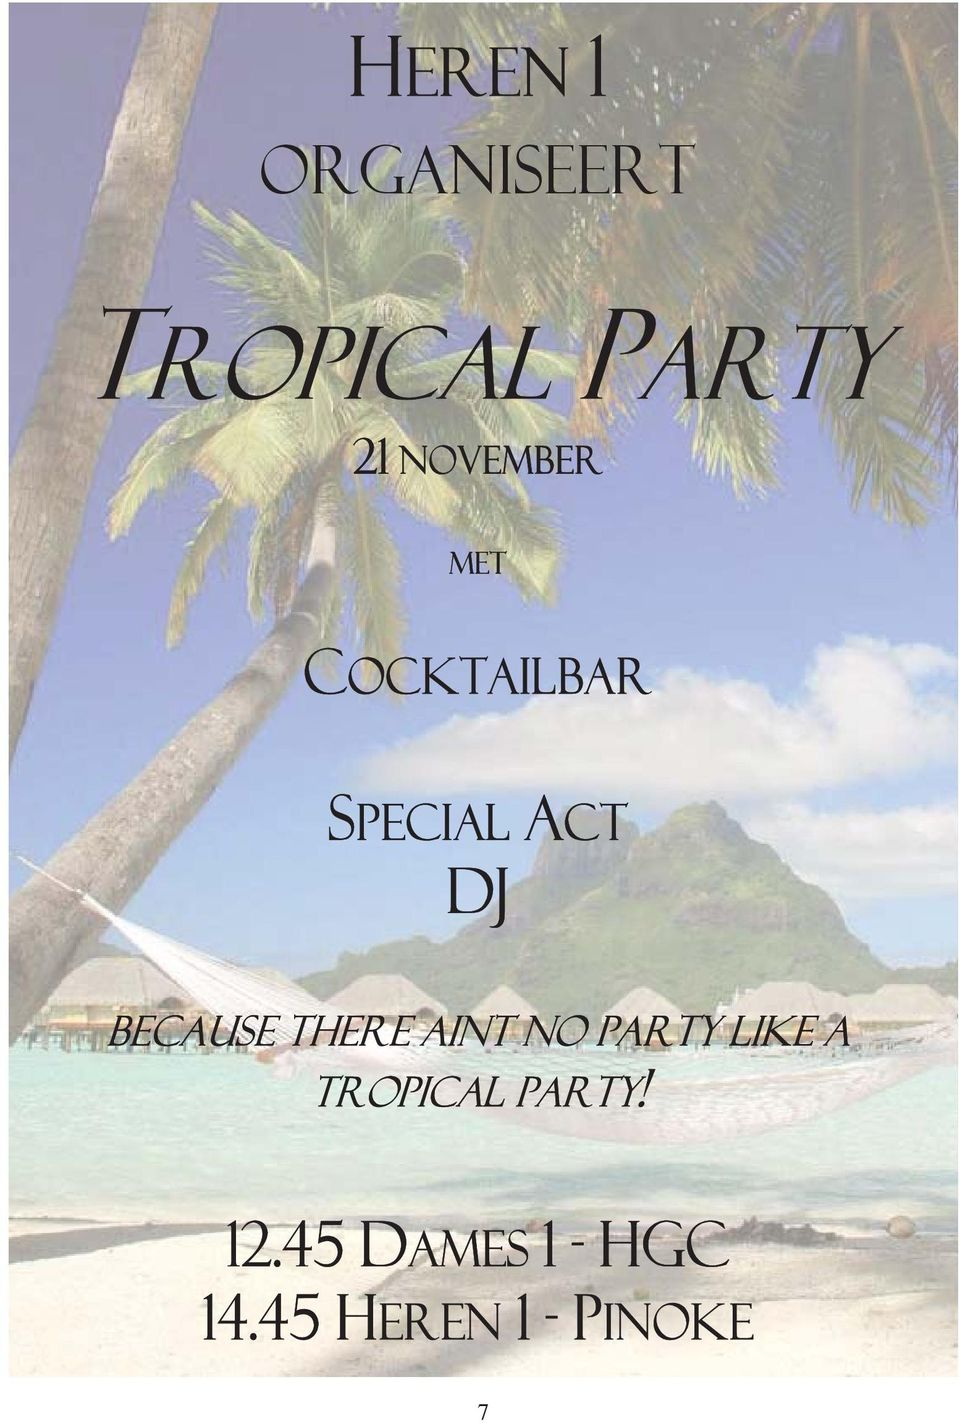 BECAUSE THERE AINT NO PARTY LIKE A TROPICAL